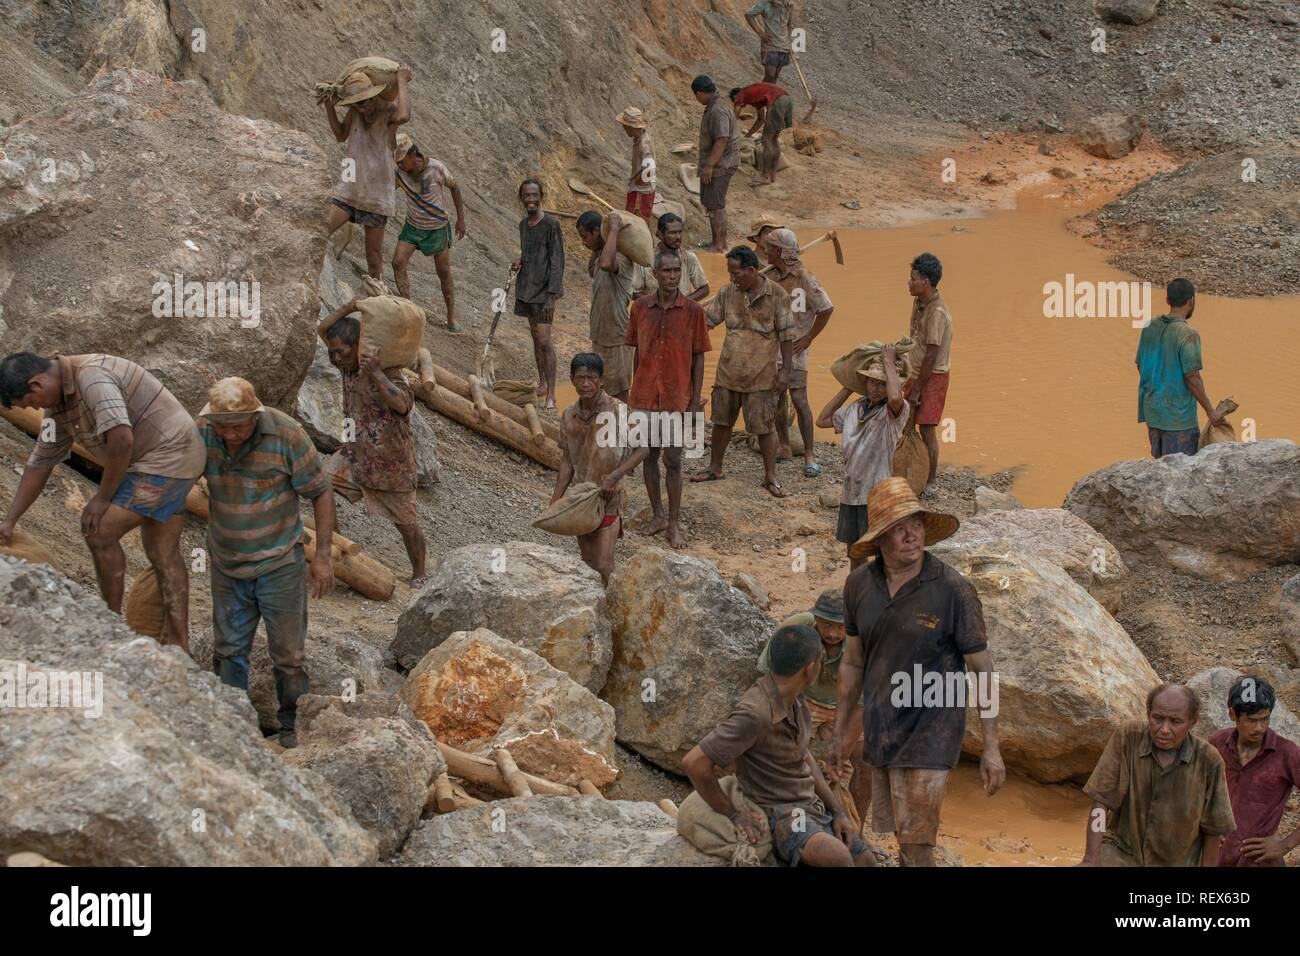 GOLD MINE WORKERS GOLD (2016) - Stock Image